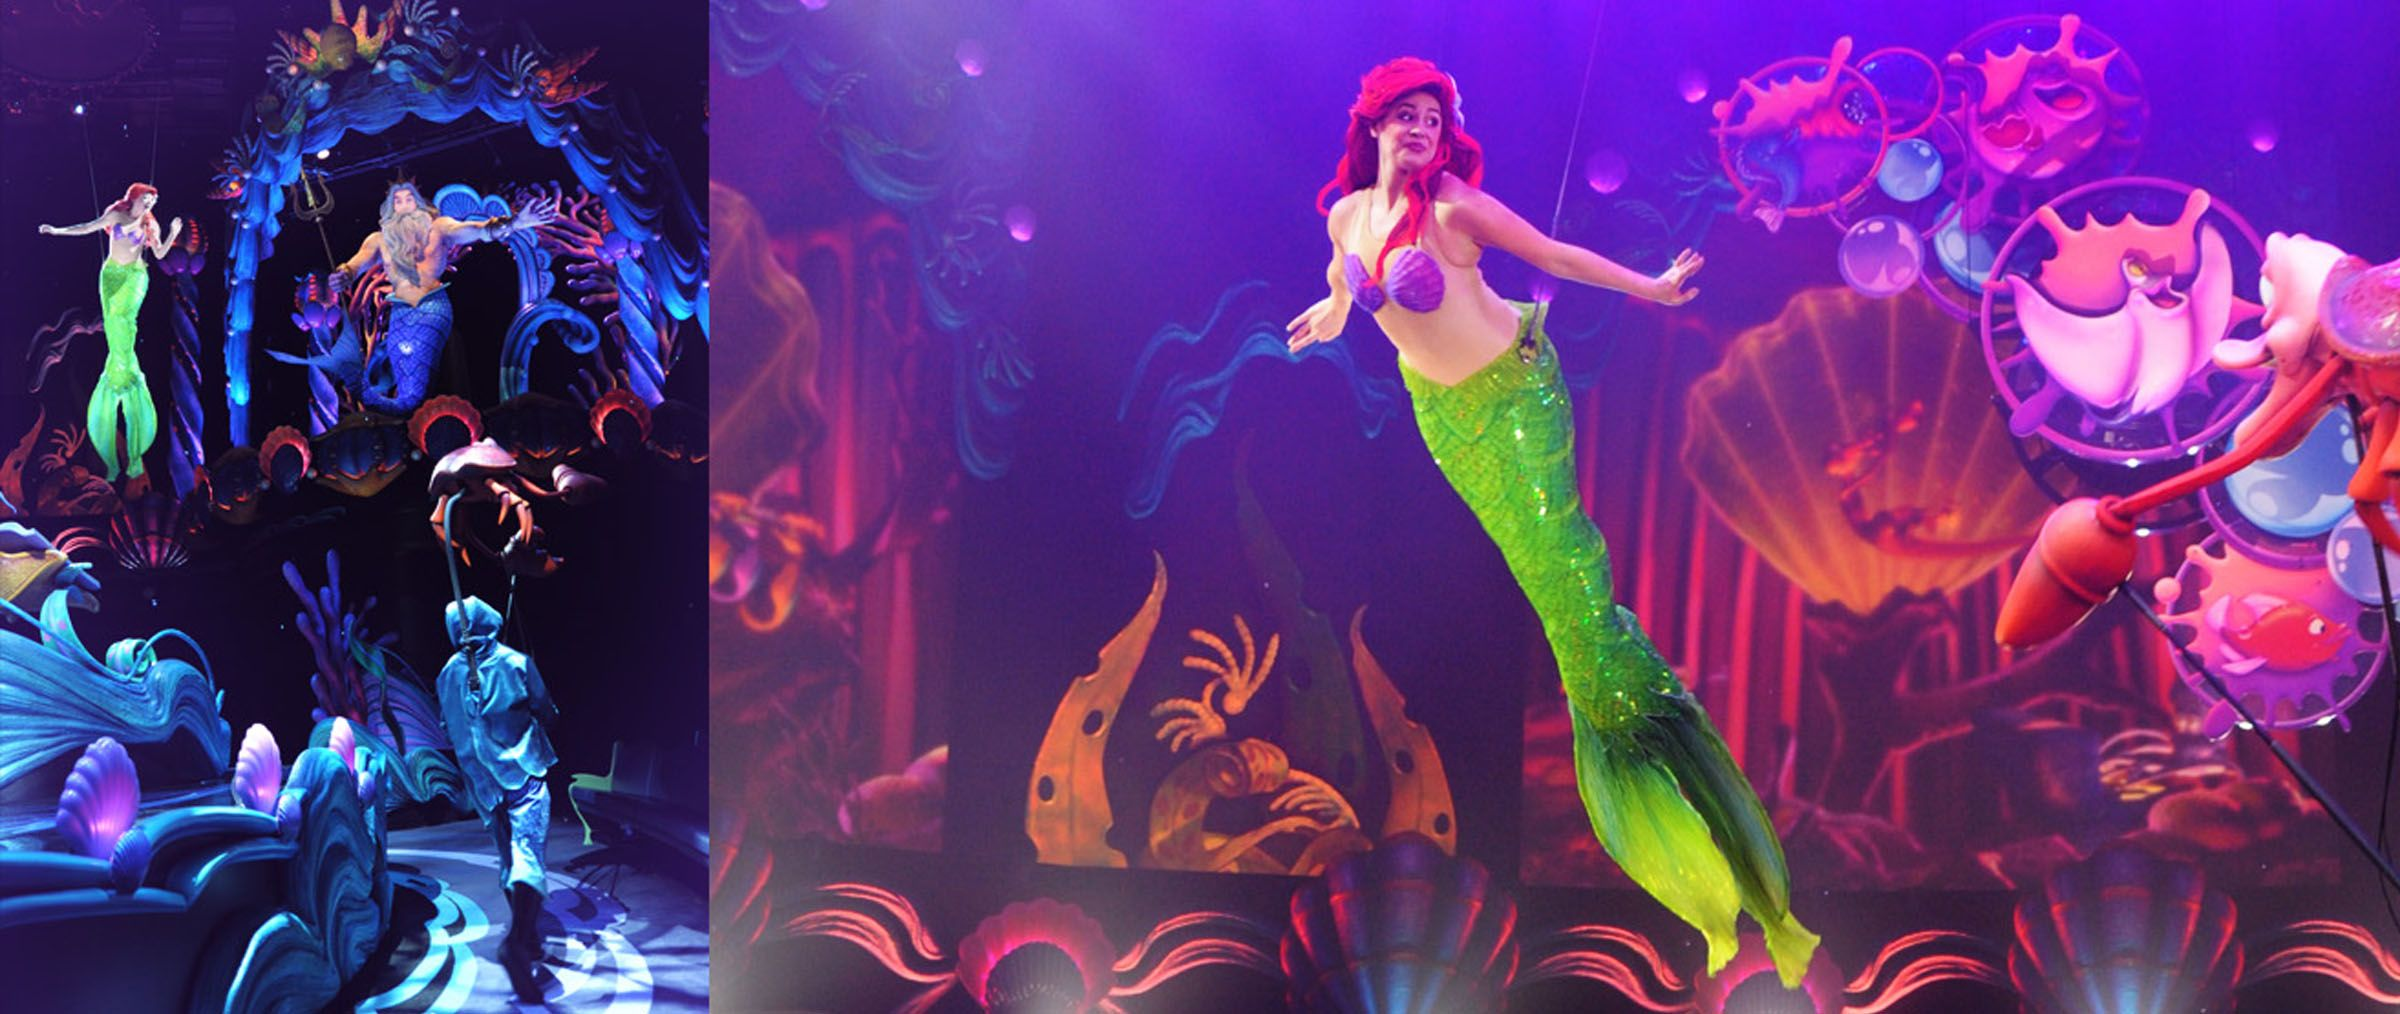 Mermaid 2 header.jpg